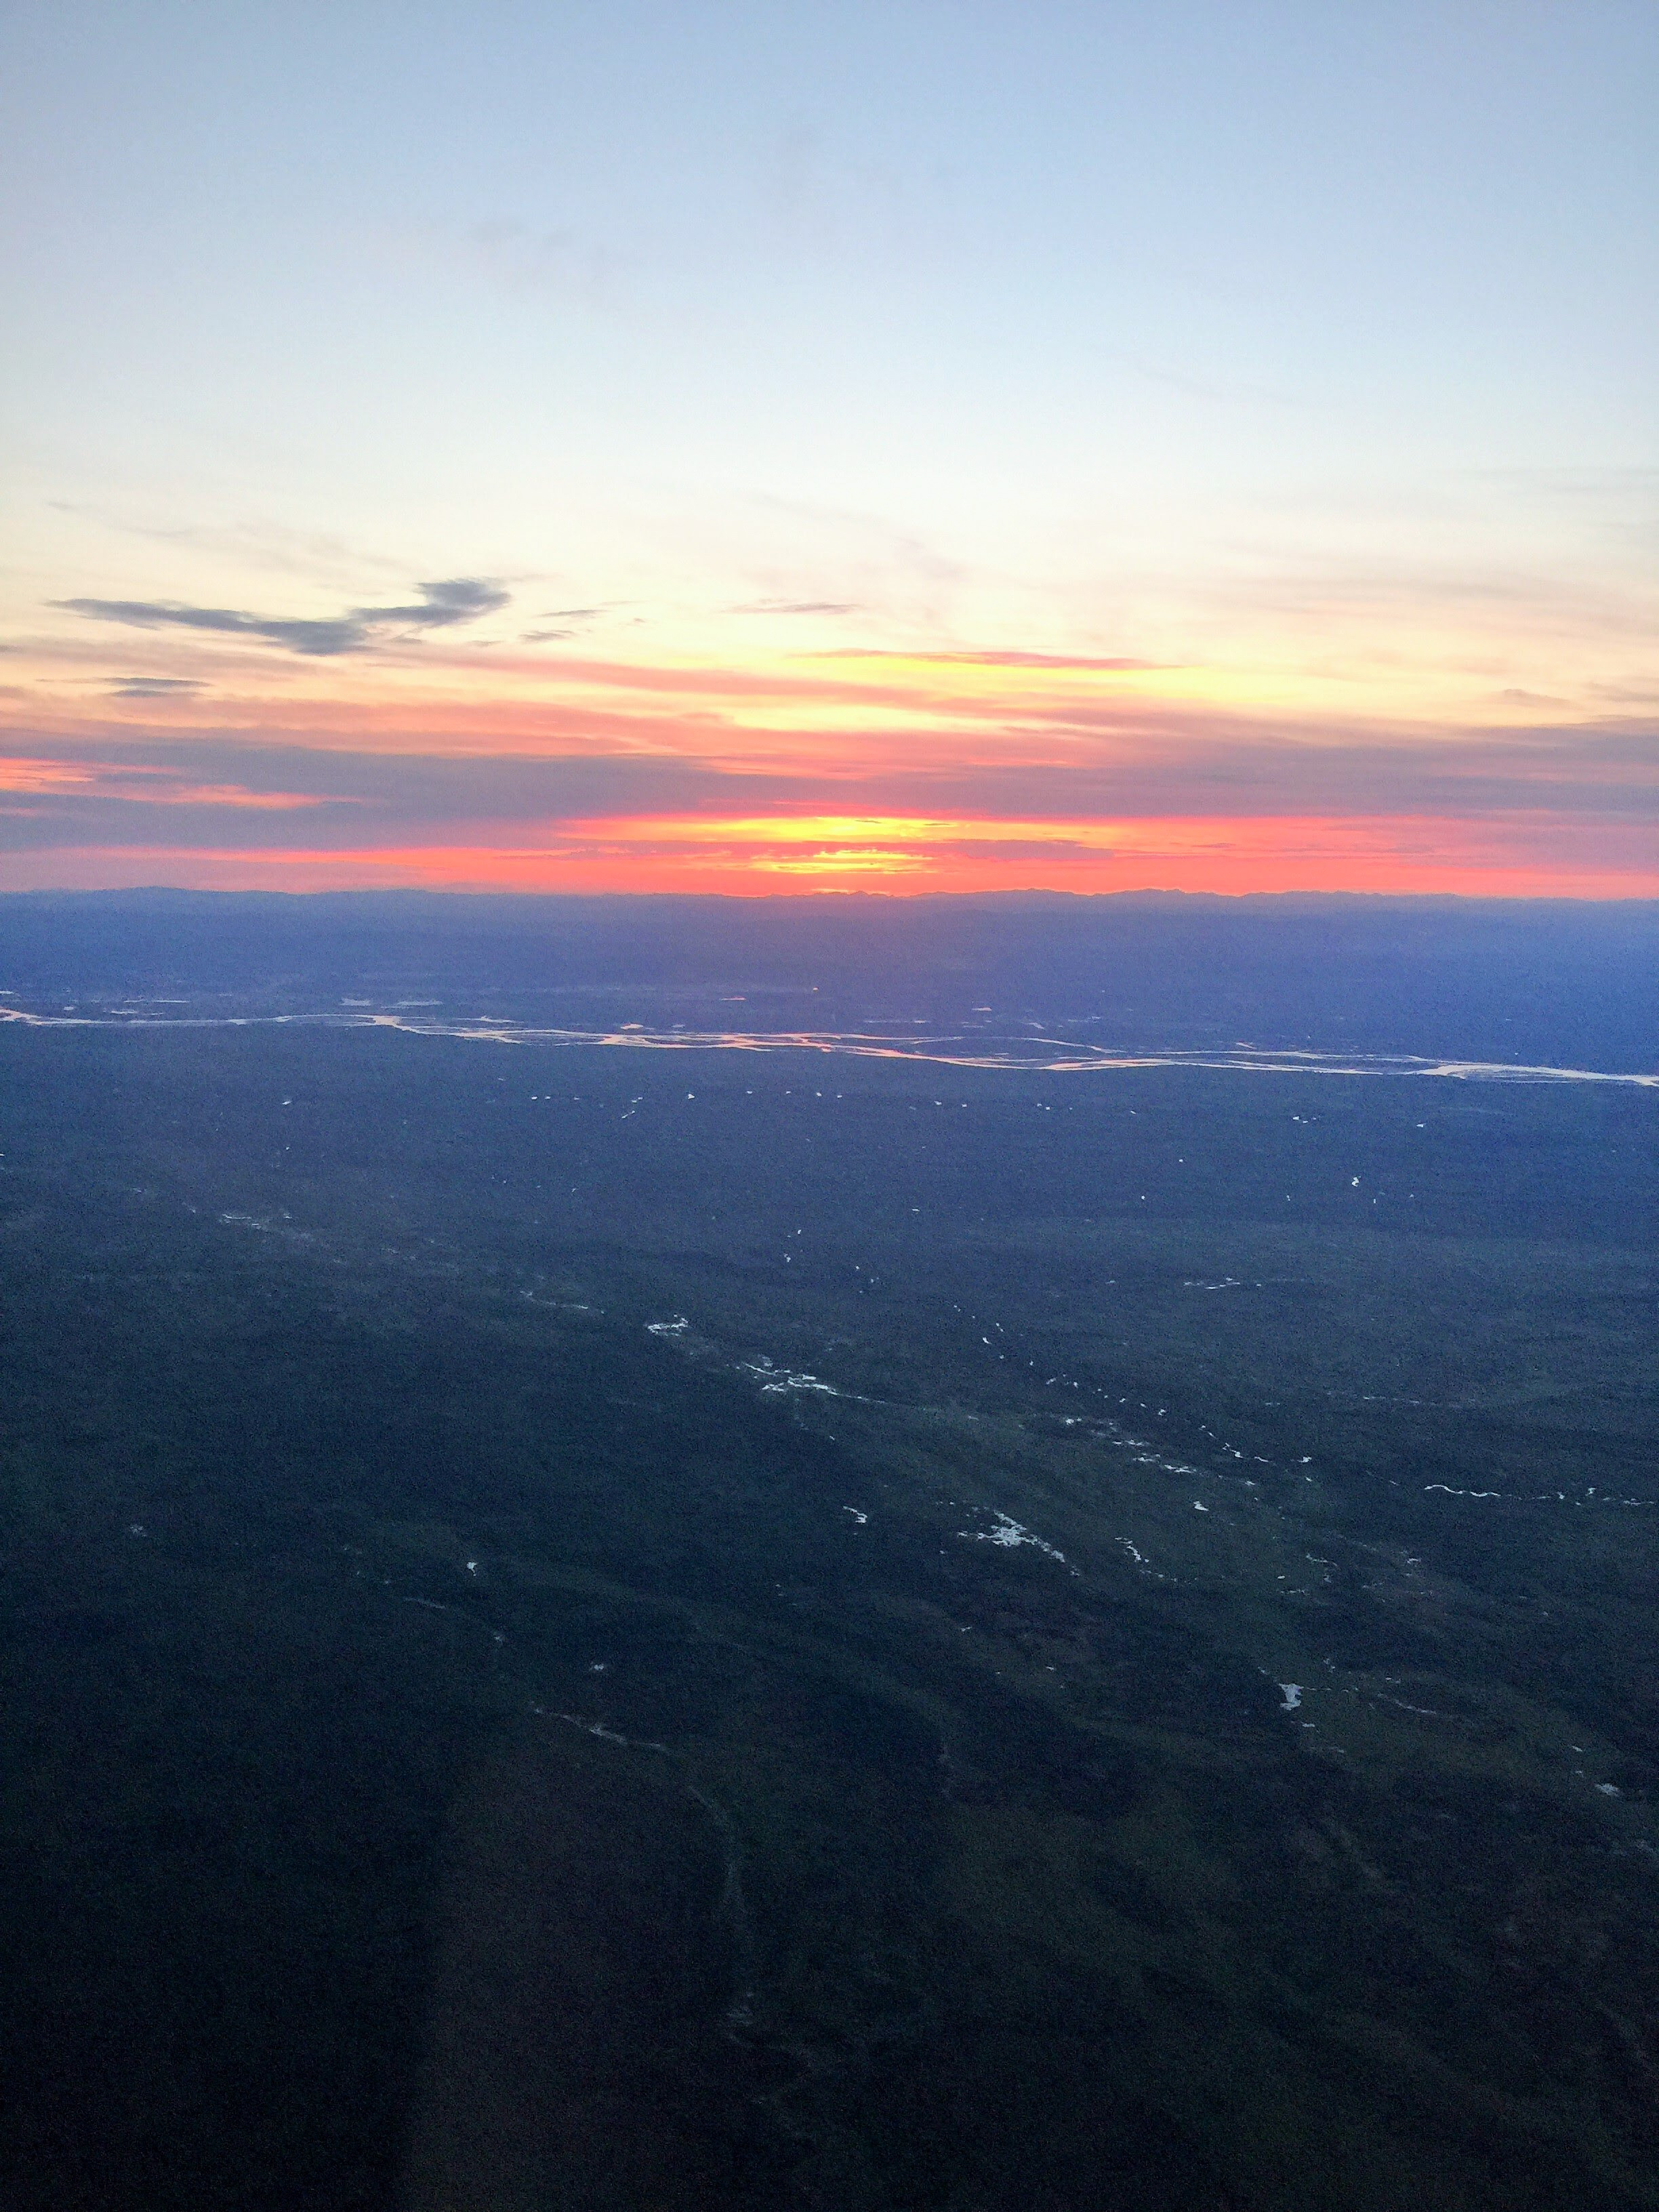 The sun set again briefly as we descended into Fairbanks.